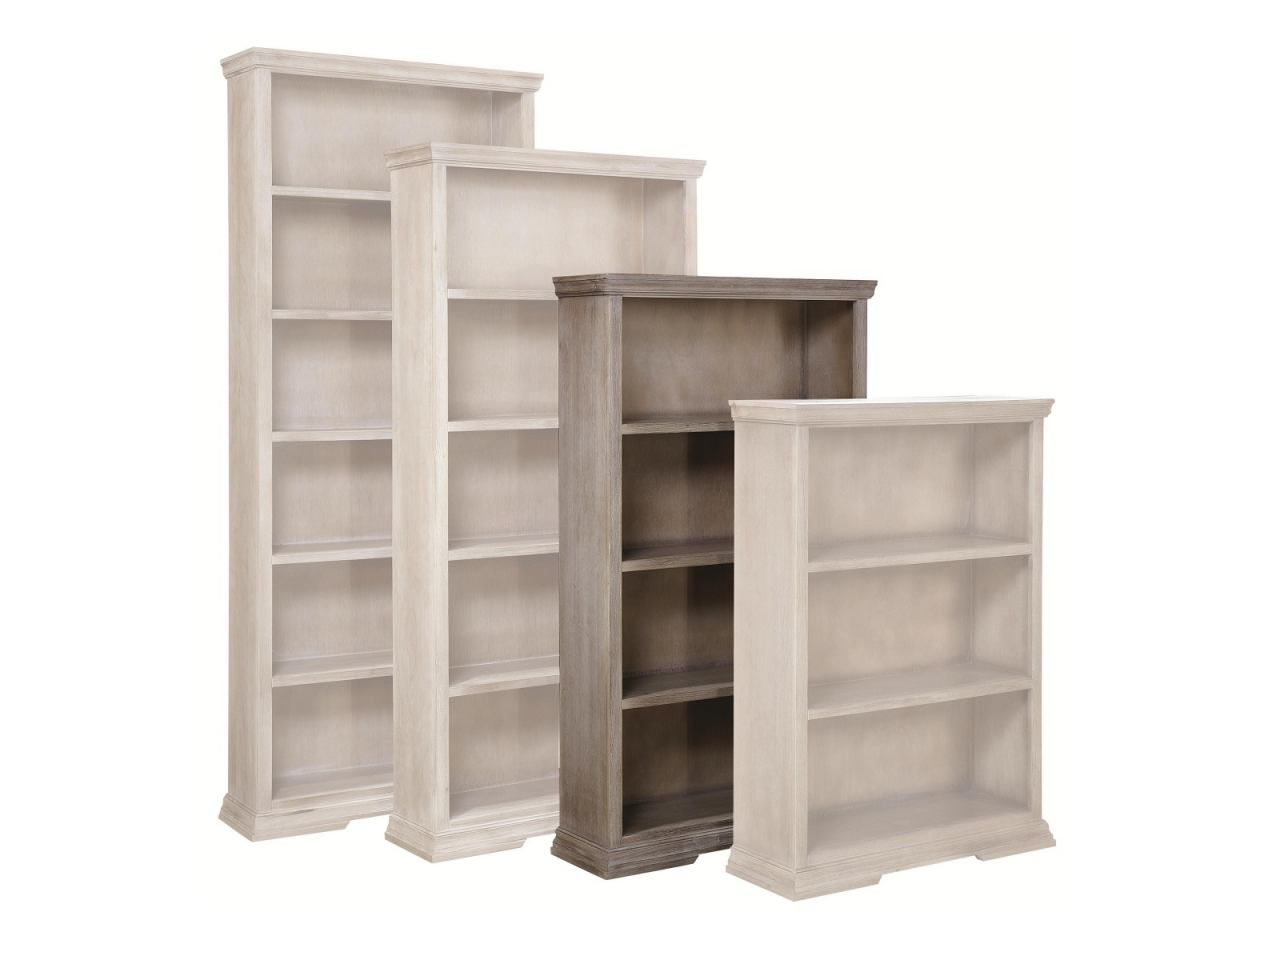 "Aspenhome Canyon Creek 60"" Open Bookcase in Driftwood WCK3460-DRF"